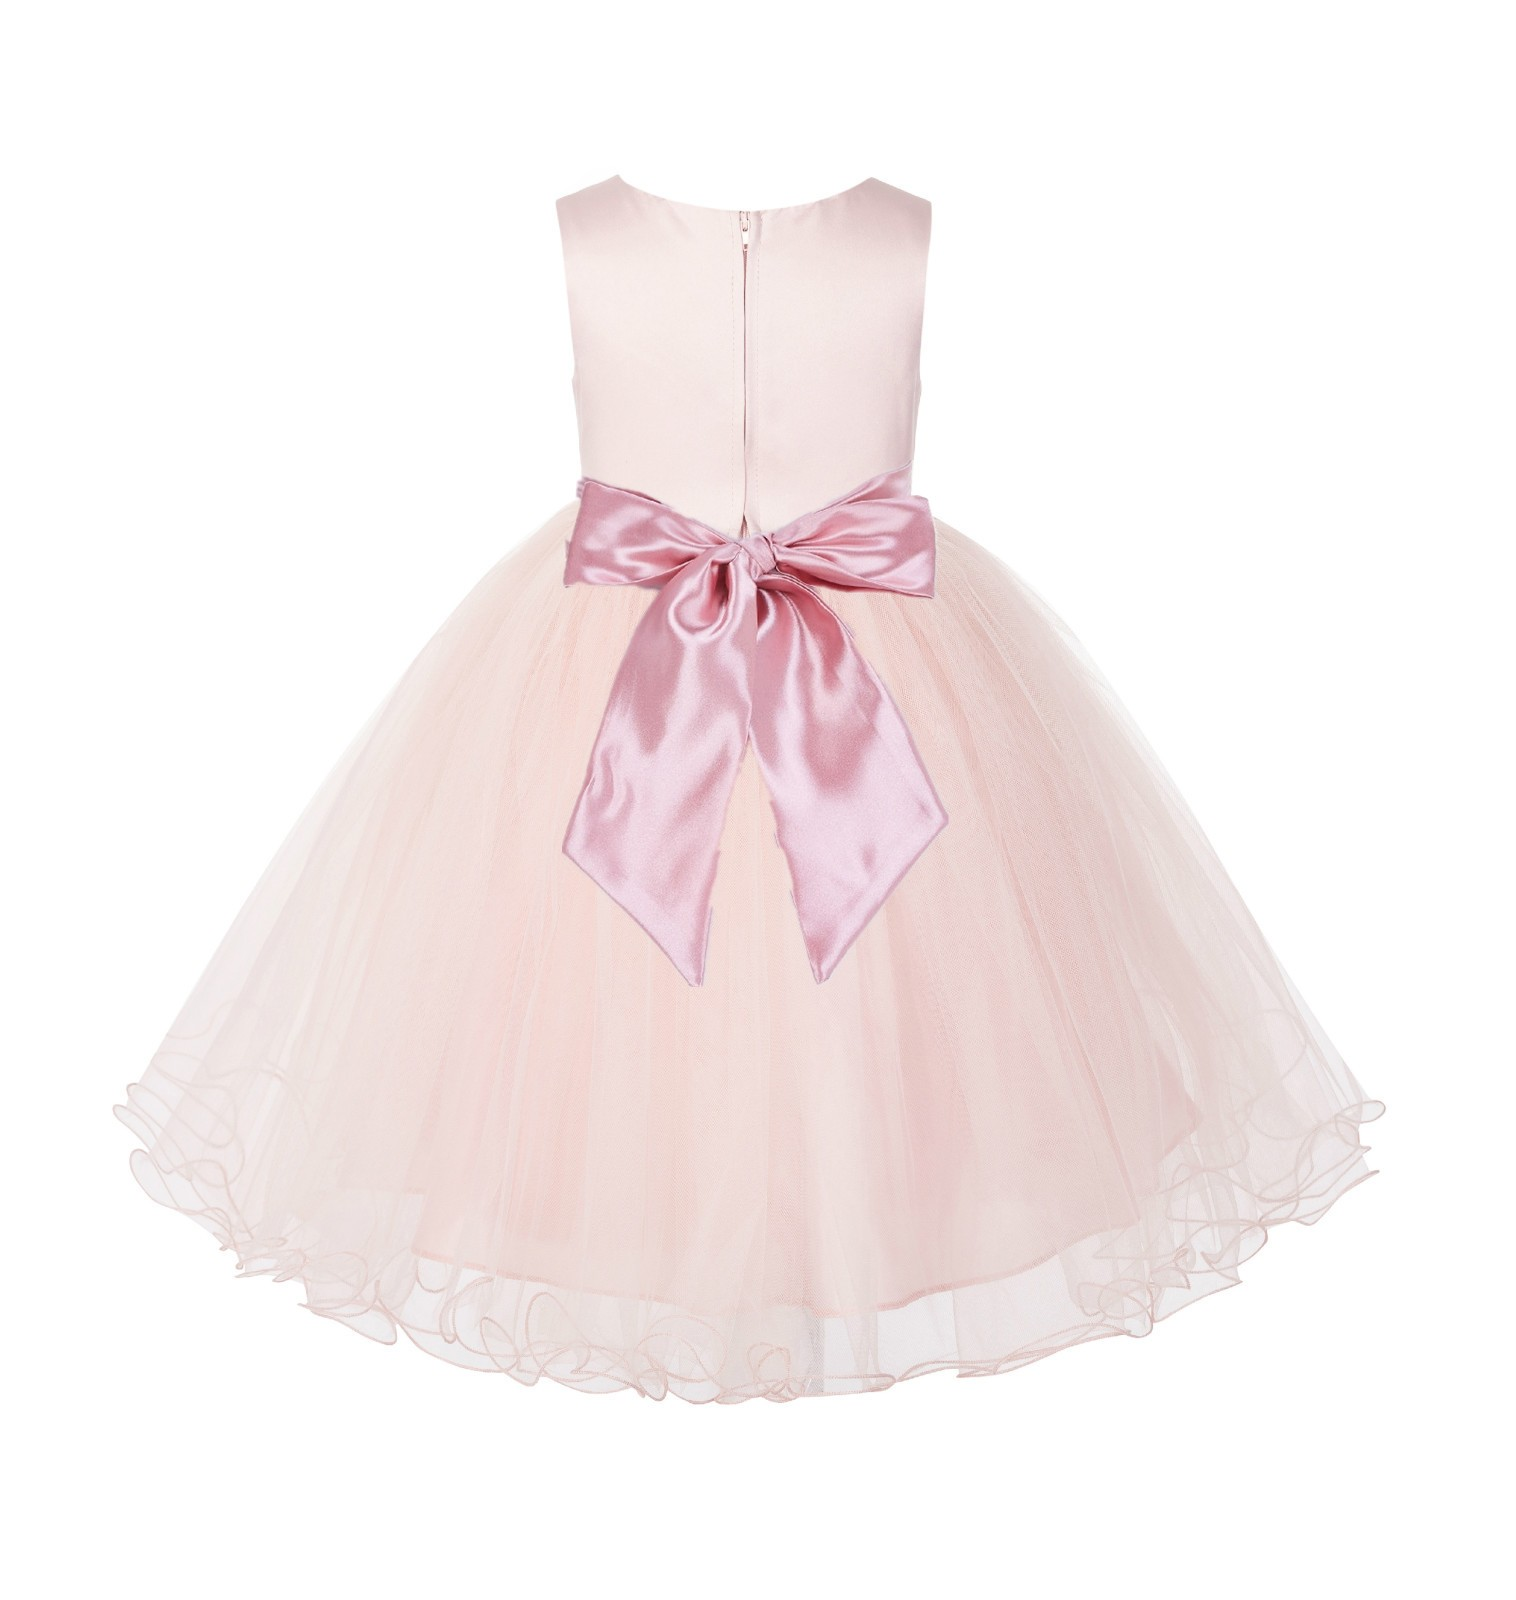 Blush Pink / Dusty rose Tulle Rattail Edge Flower Girl Dress Pageant Recital 829S